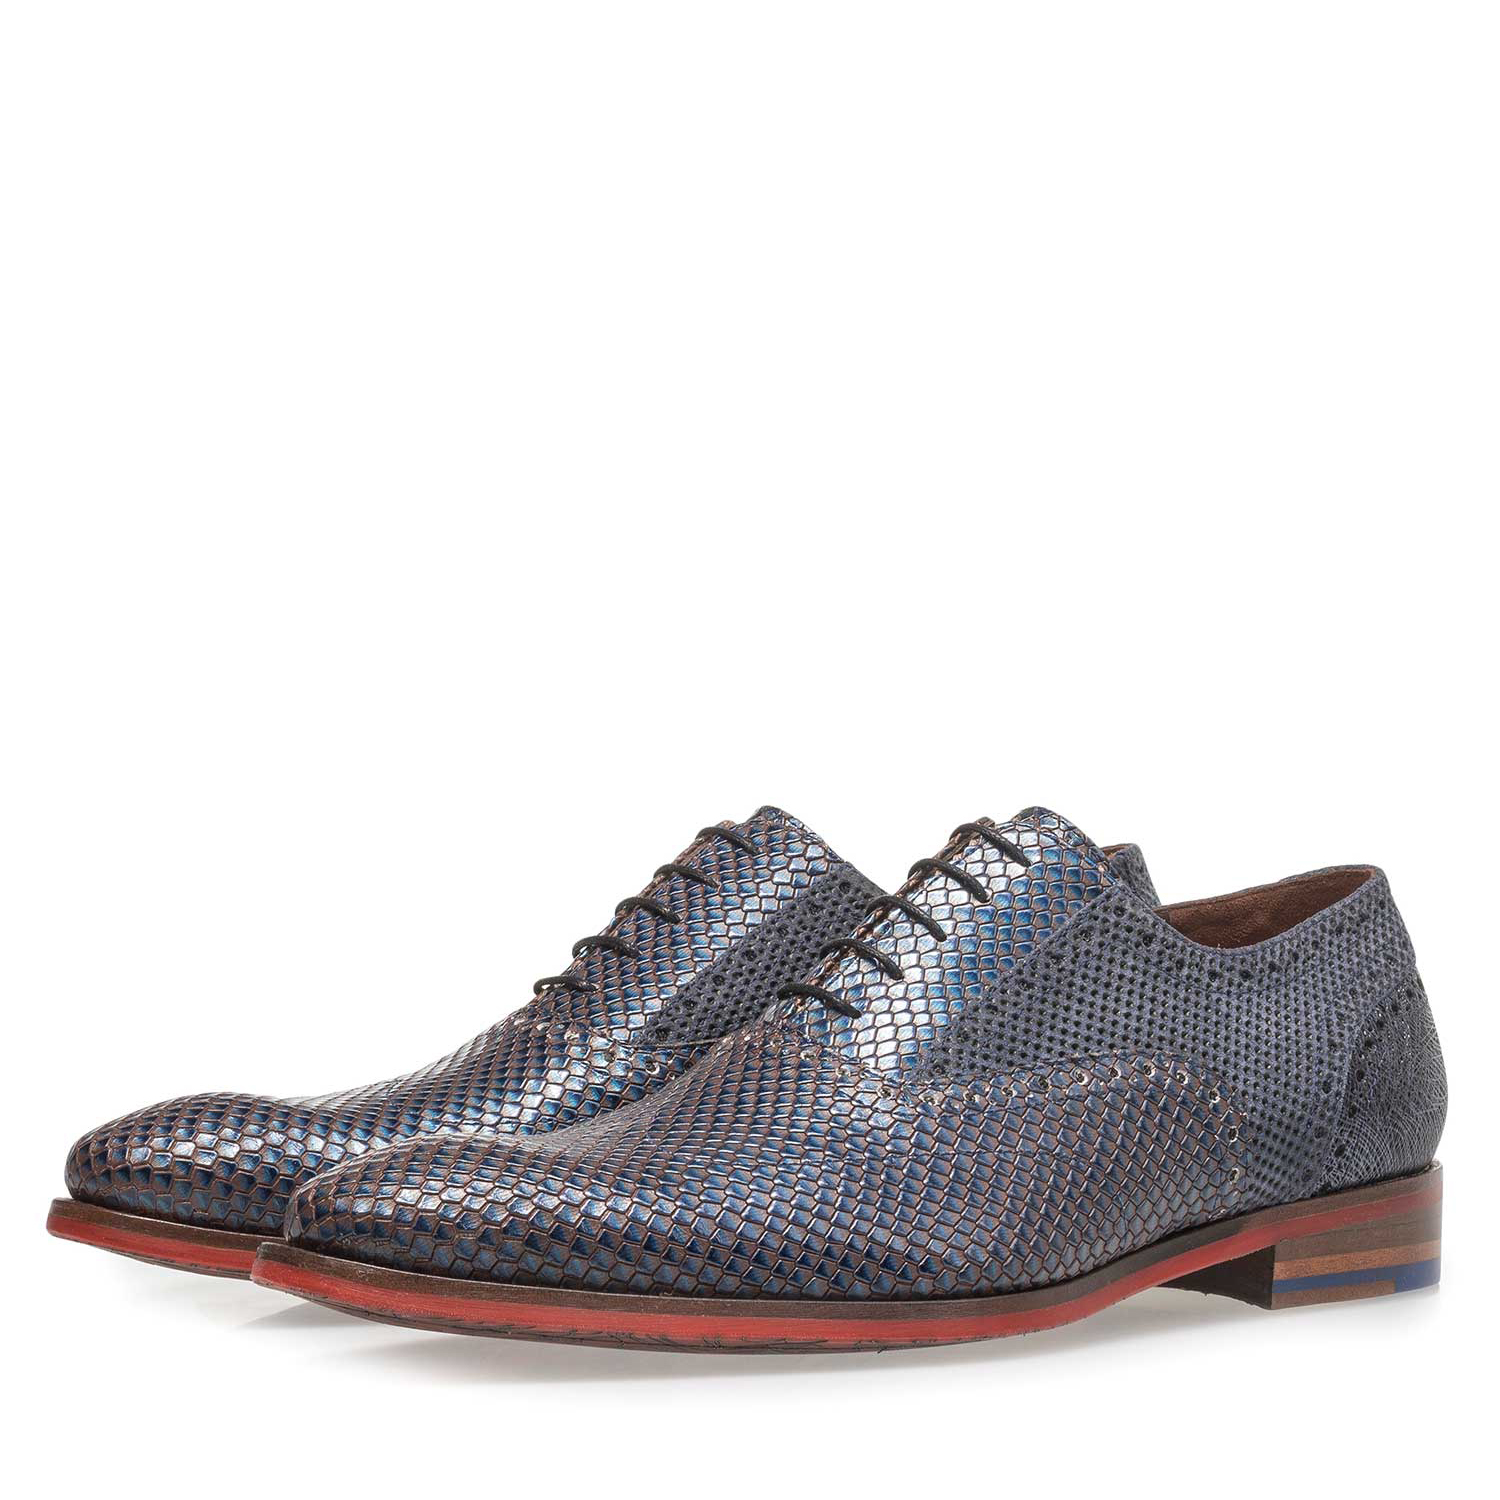 19117/05 - Premium blue calf leather lace shoe with metallic print